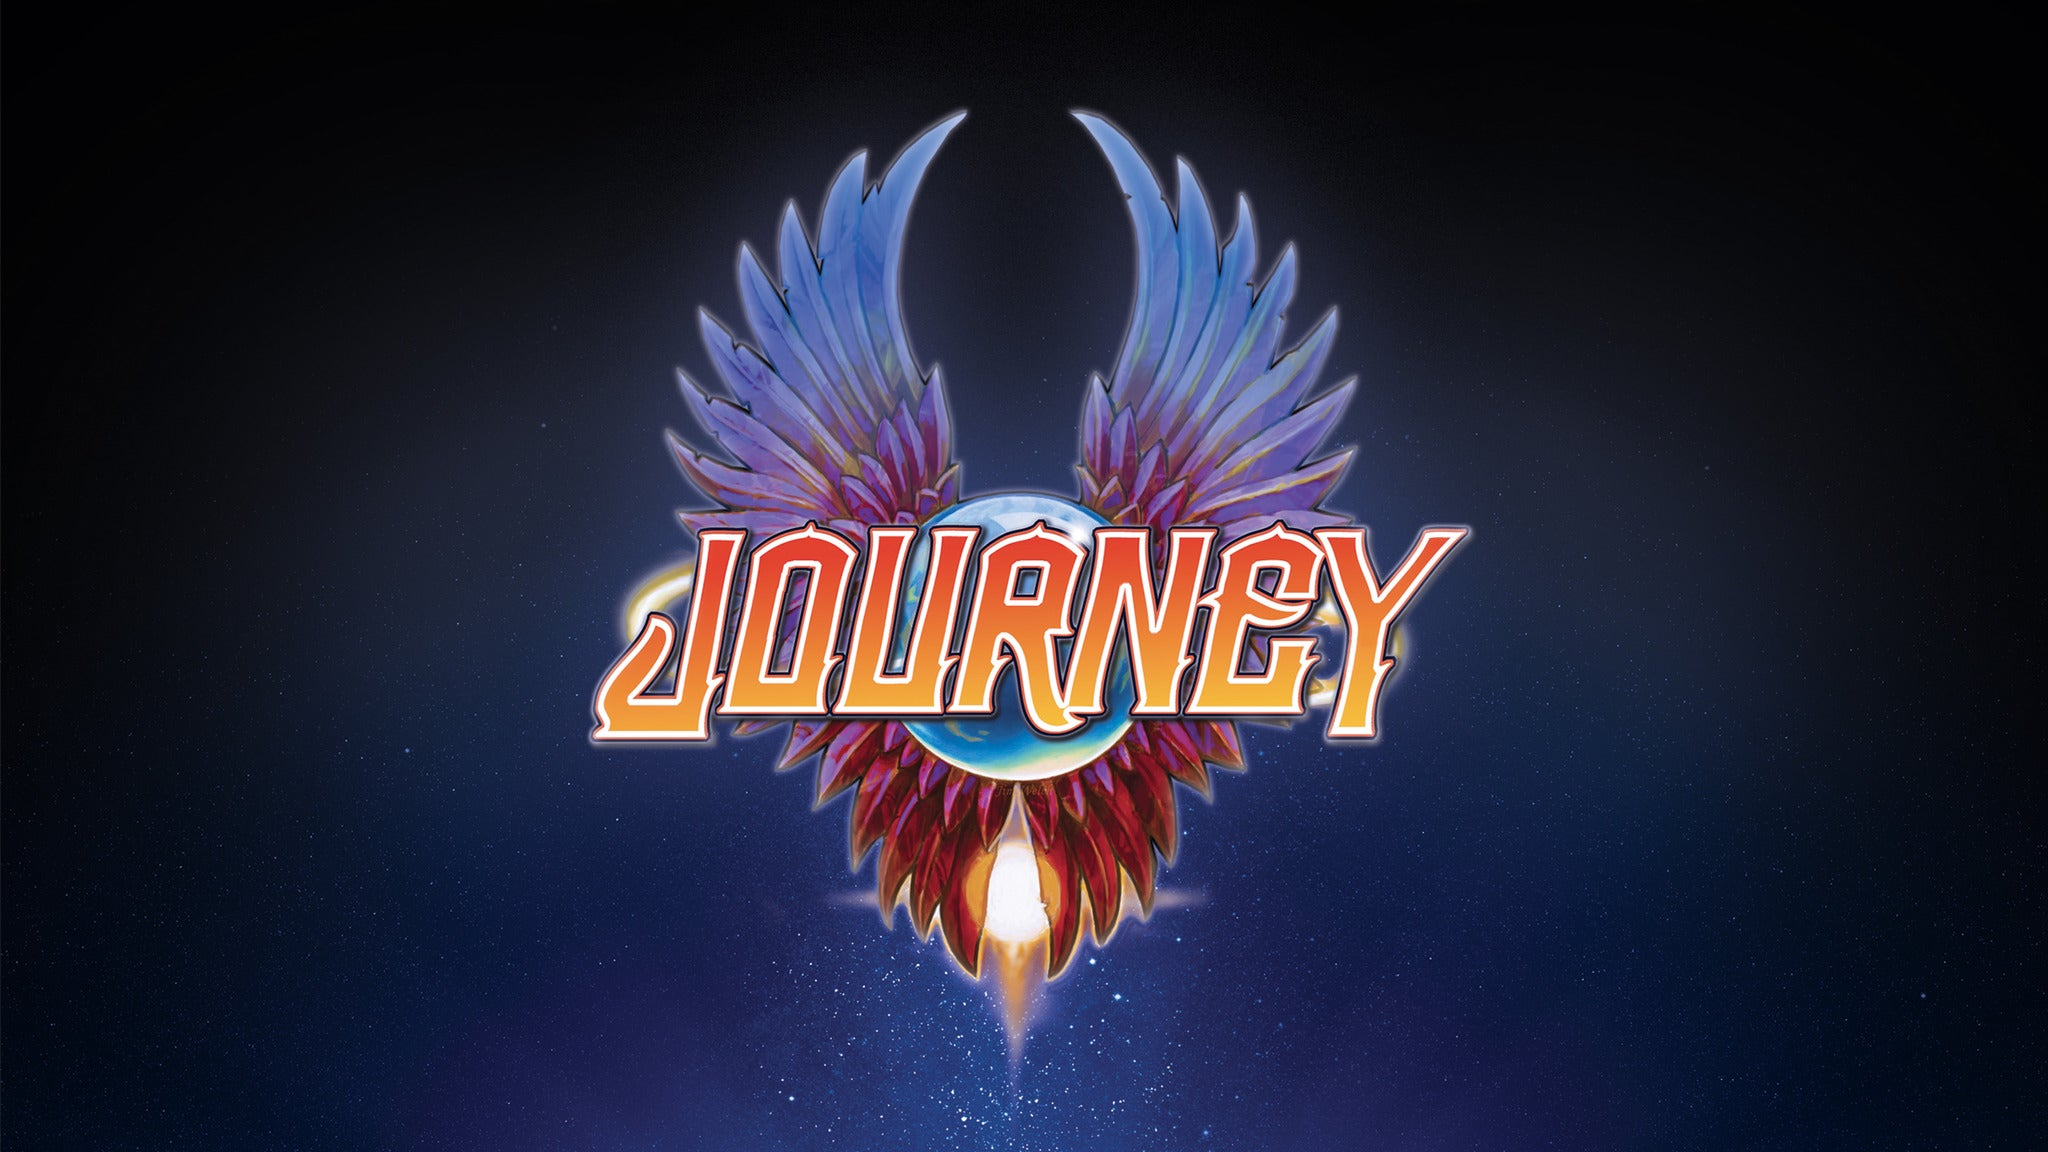 Journey - Official VIP Packages at Fargodome